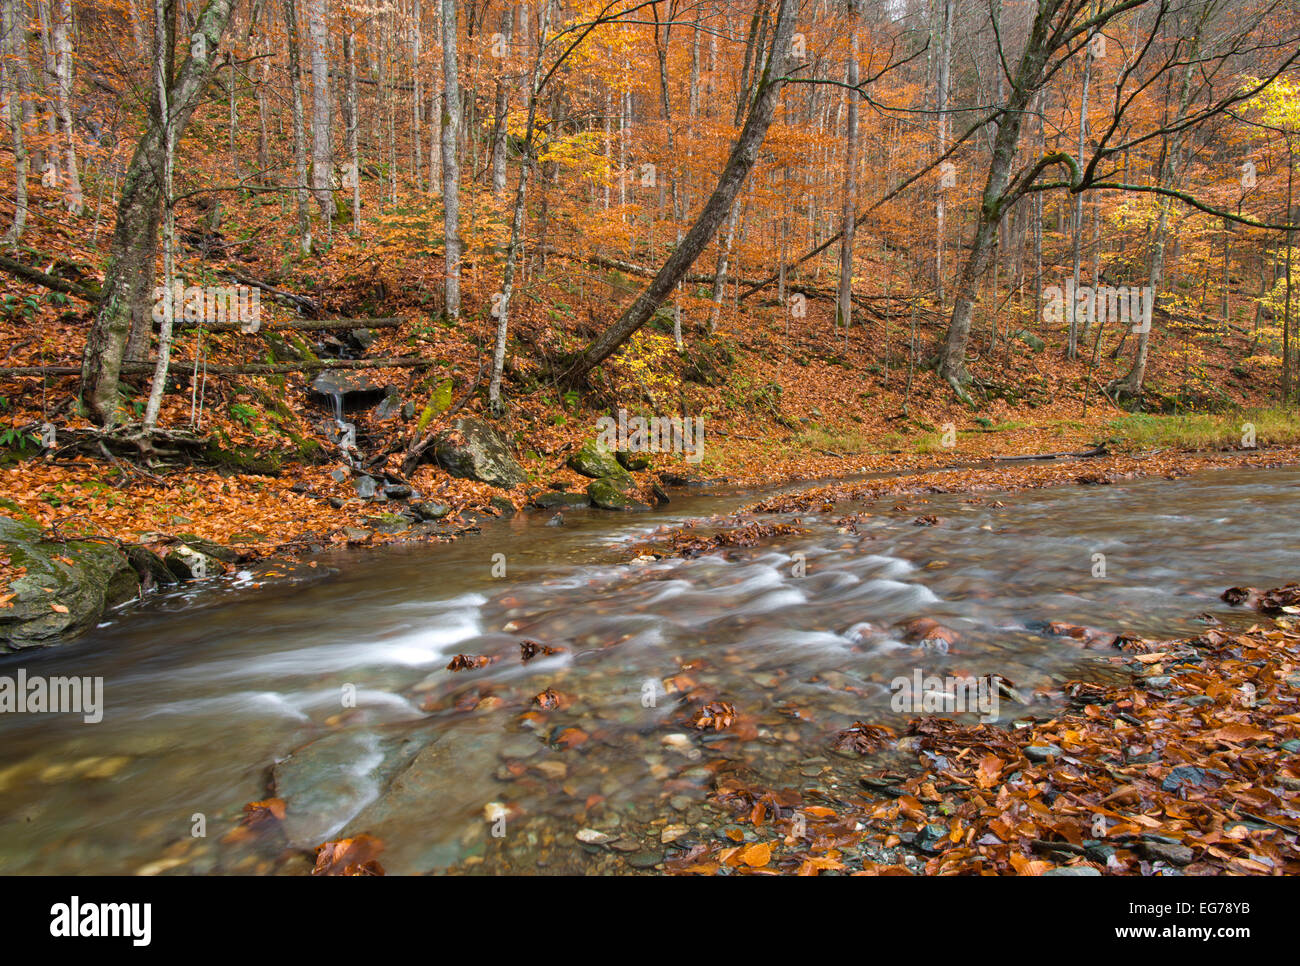 Water flowing swiftly in these colorful woods - Vermont, USA - Stock Image